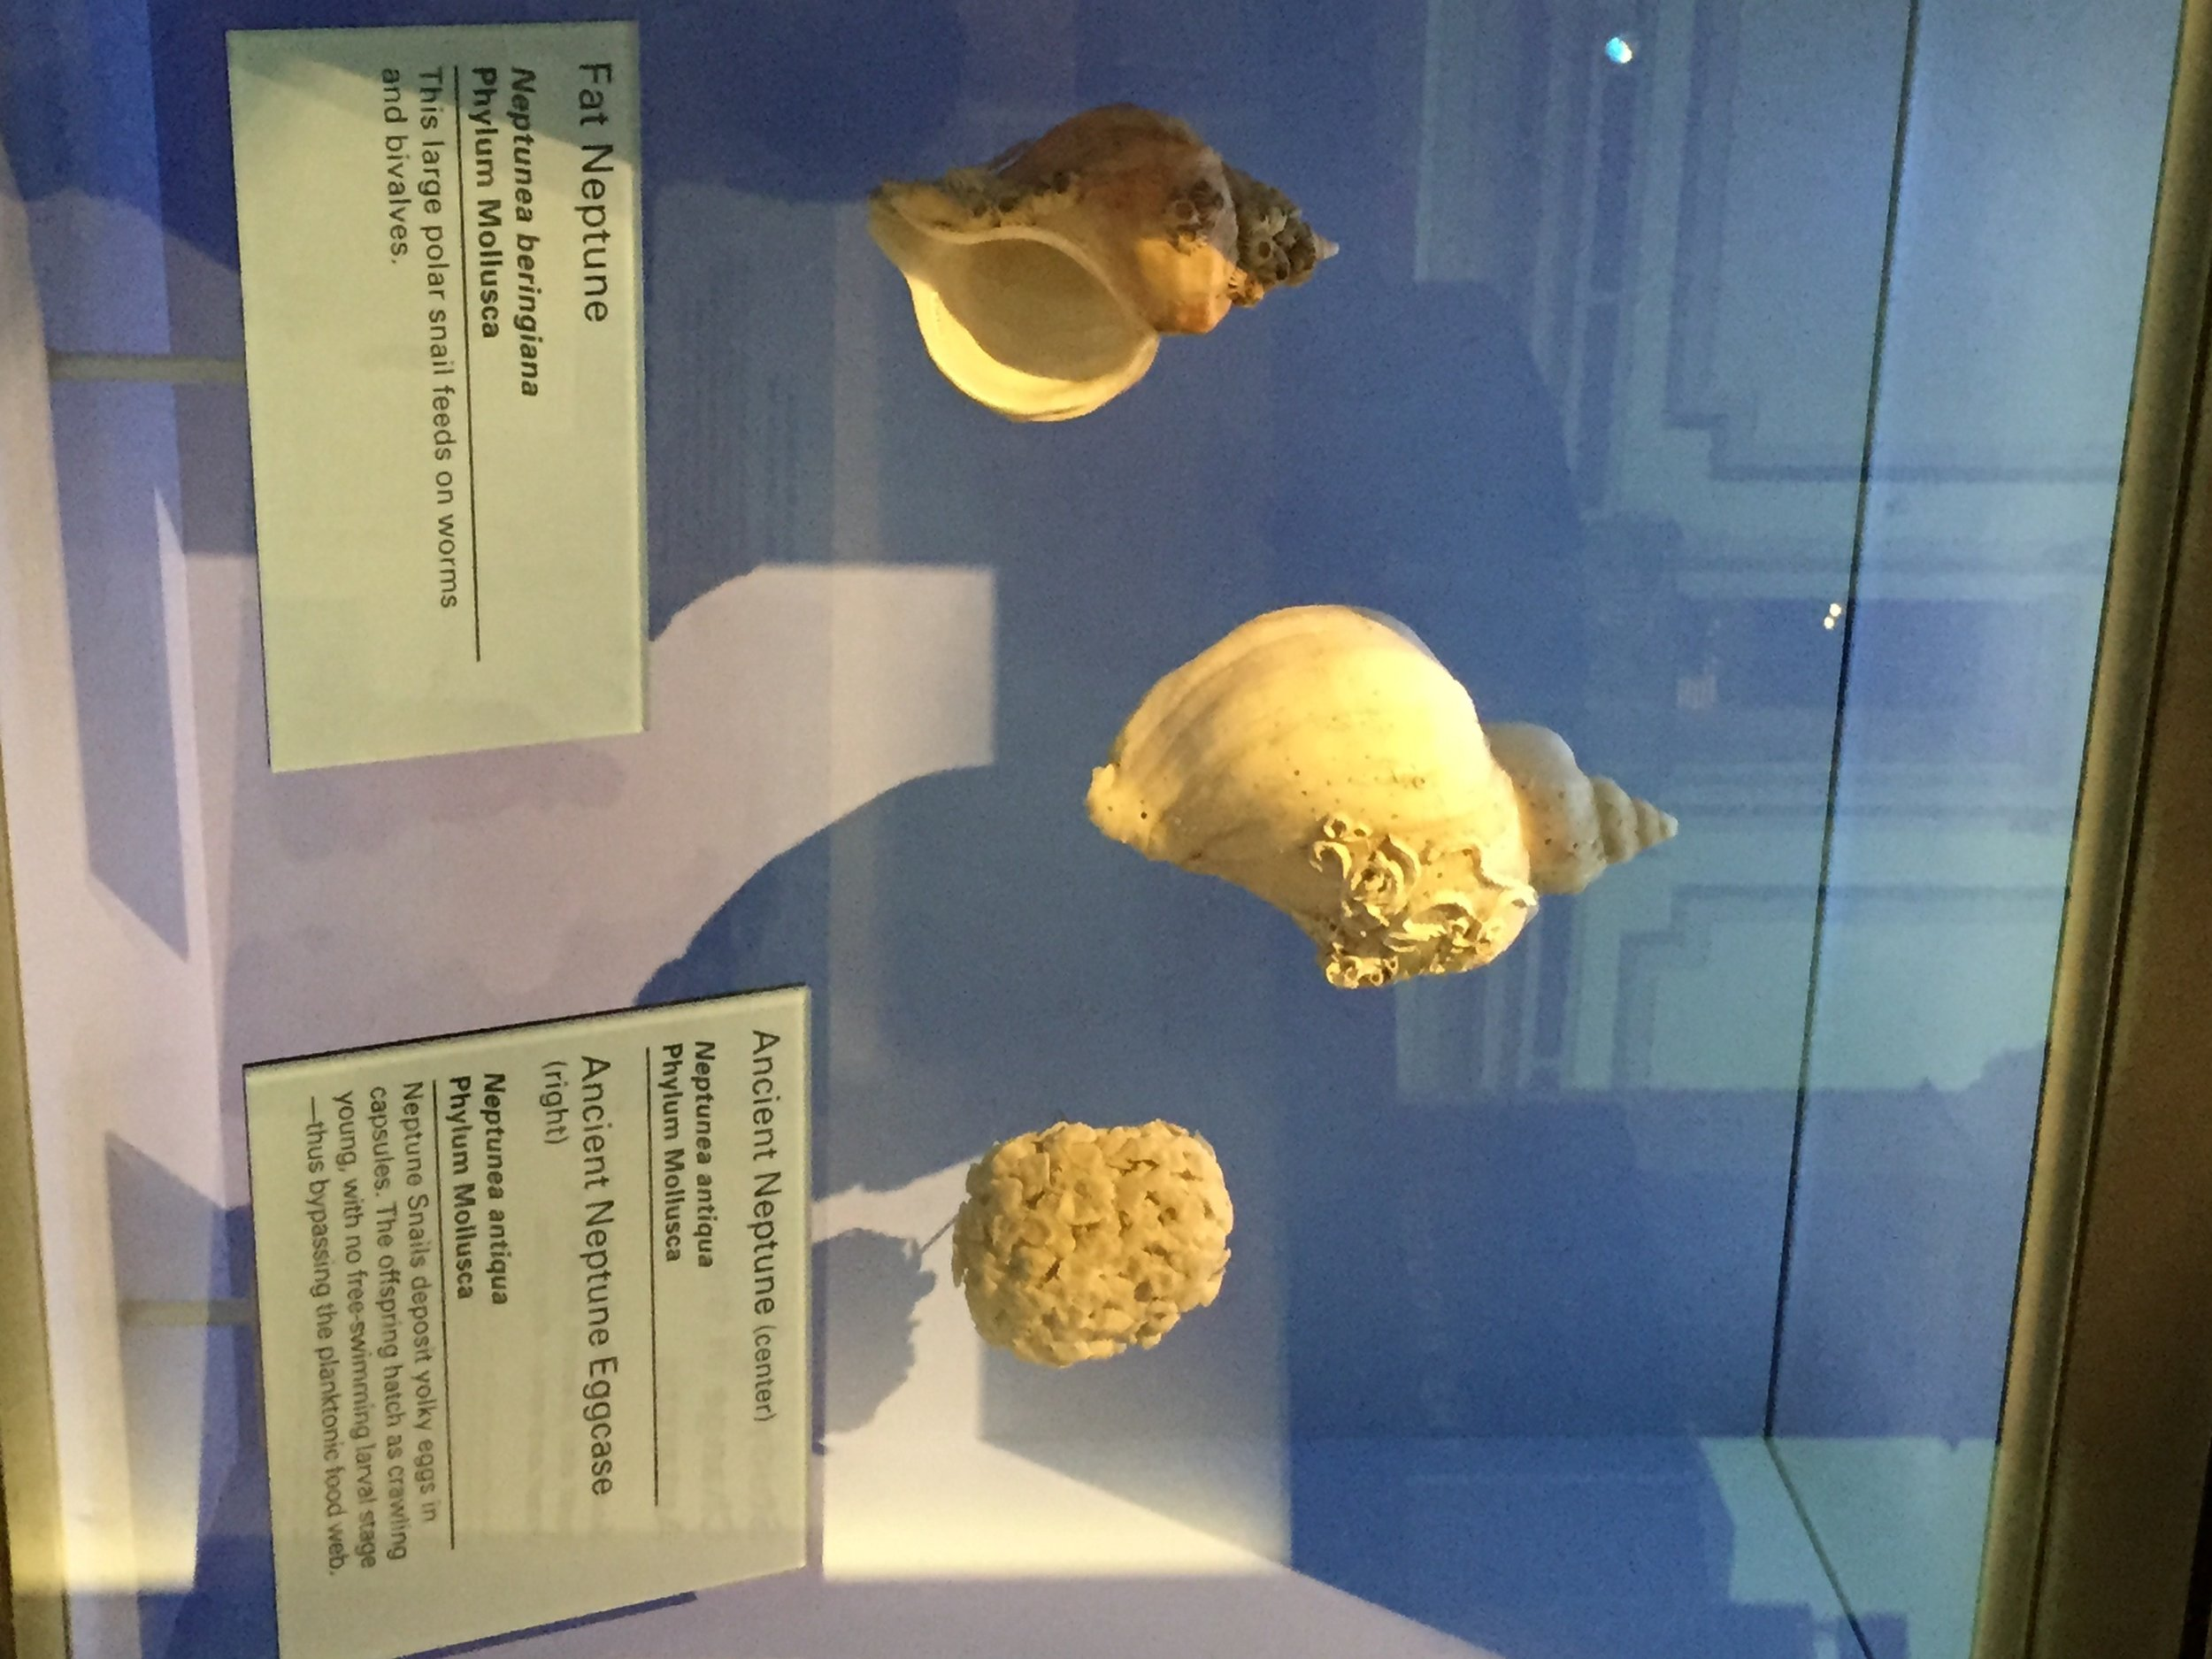 The Arctic Ocean's charismatic mega fauna didn't get all the attention. From krill to whelks, like the fat Neptune, museum exhibits highlighted the ecological importance of some of the Arctic Ocean's smaller inhabitants.